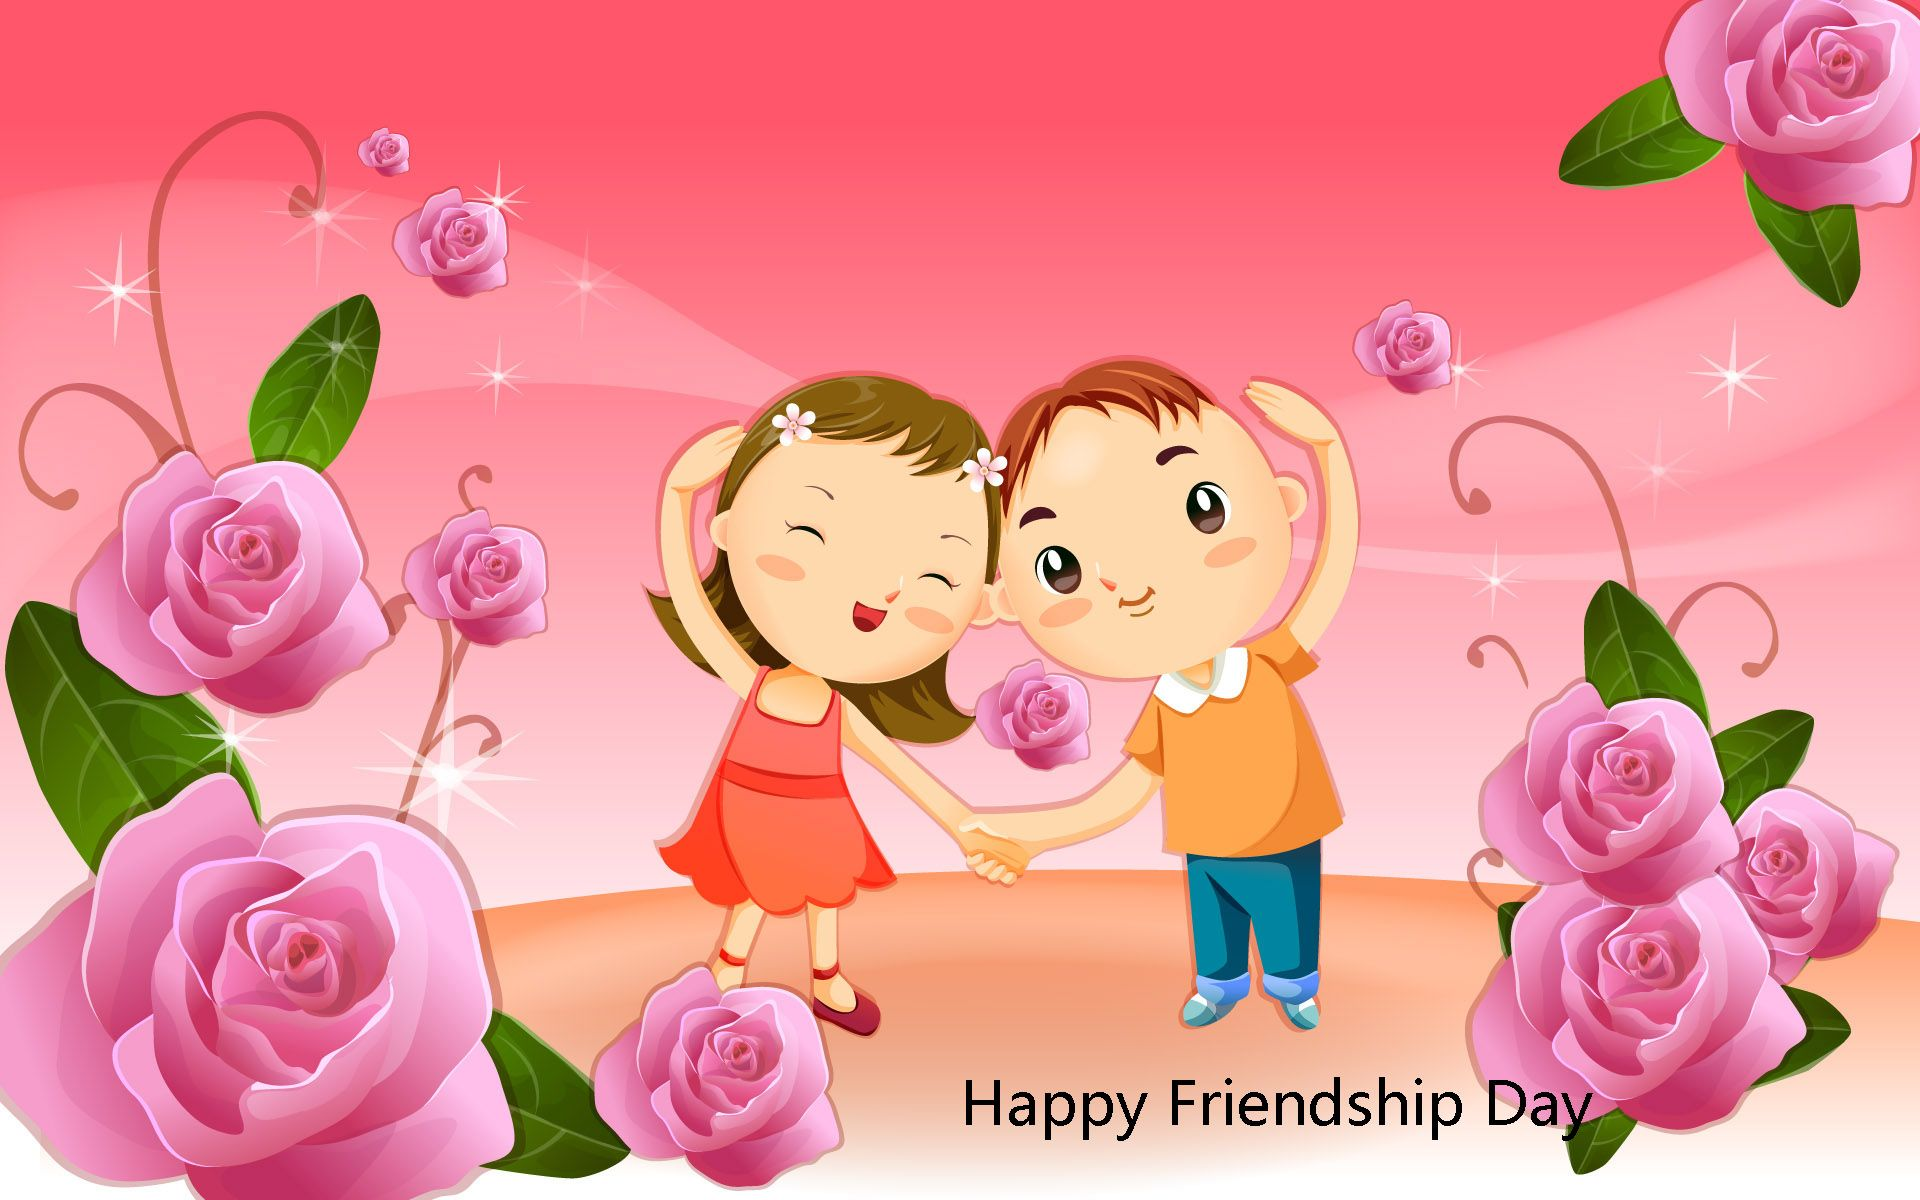 Wallpaper download love and friendship - Download Images Of Happy Friendship Day Download Free Download Images Of Happy Friendship Day In